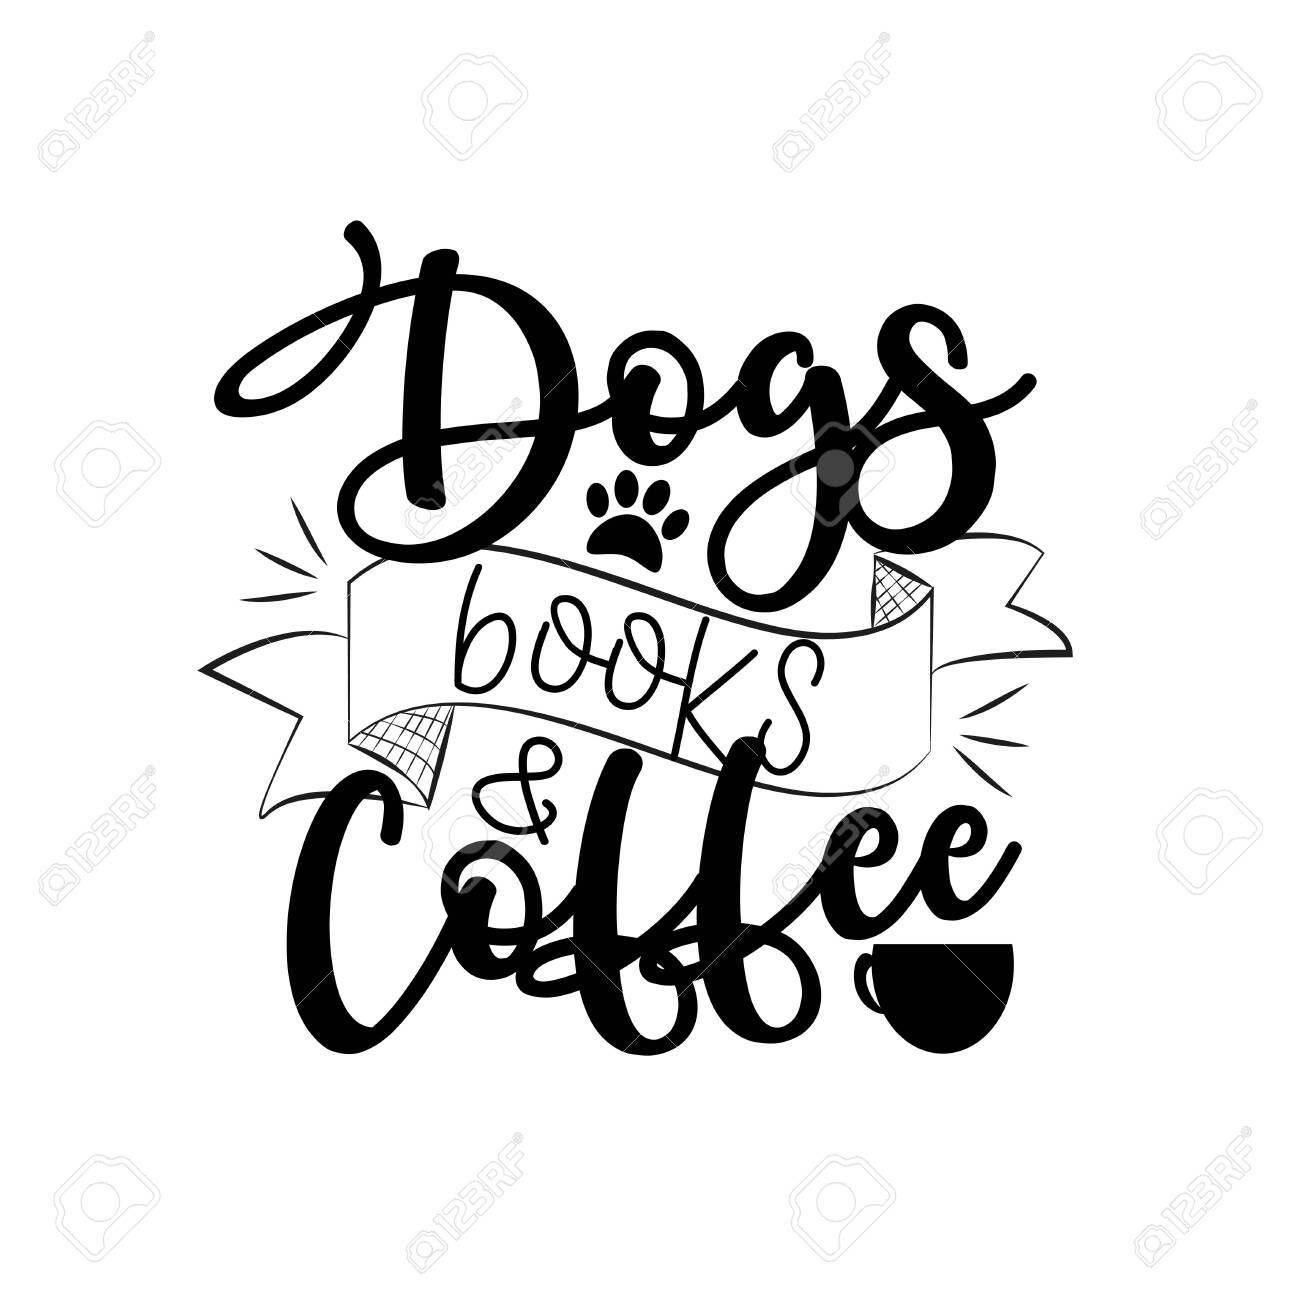 Dogs Books and Coffee- positive calligraphy with cup and